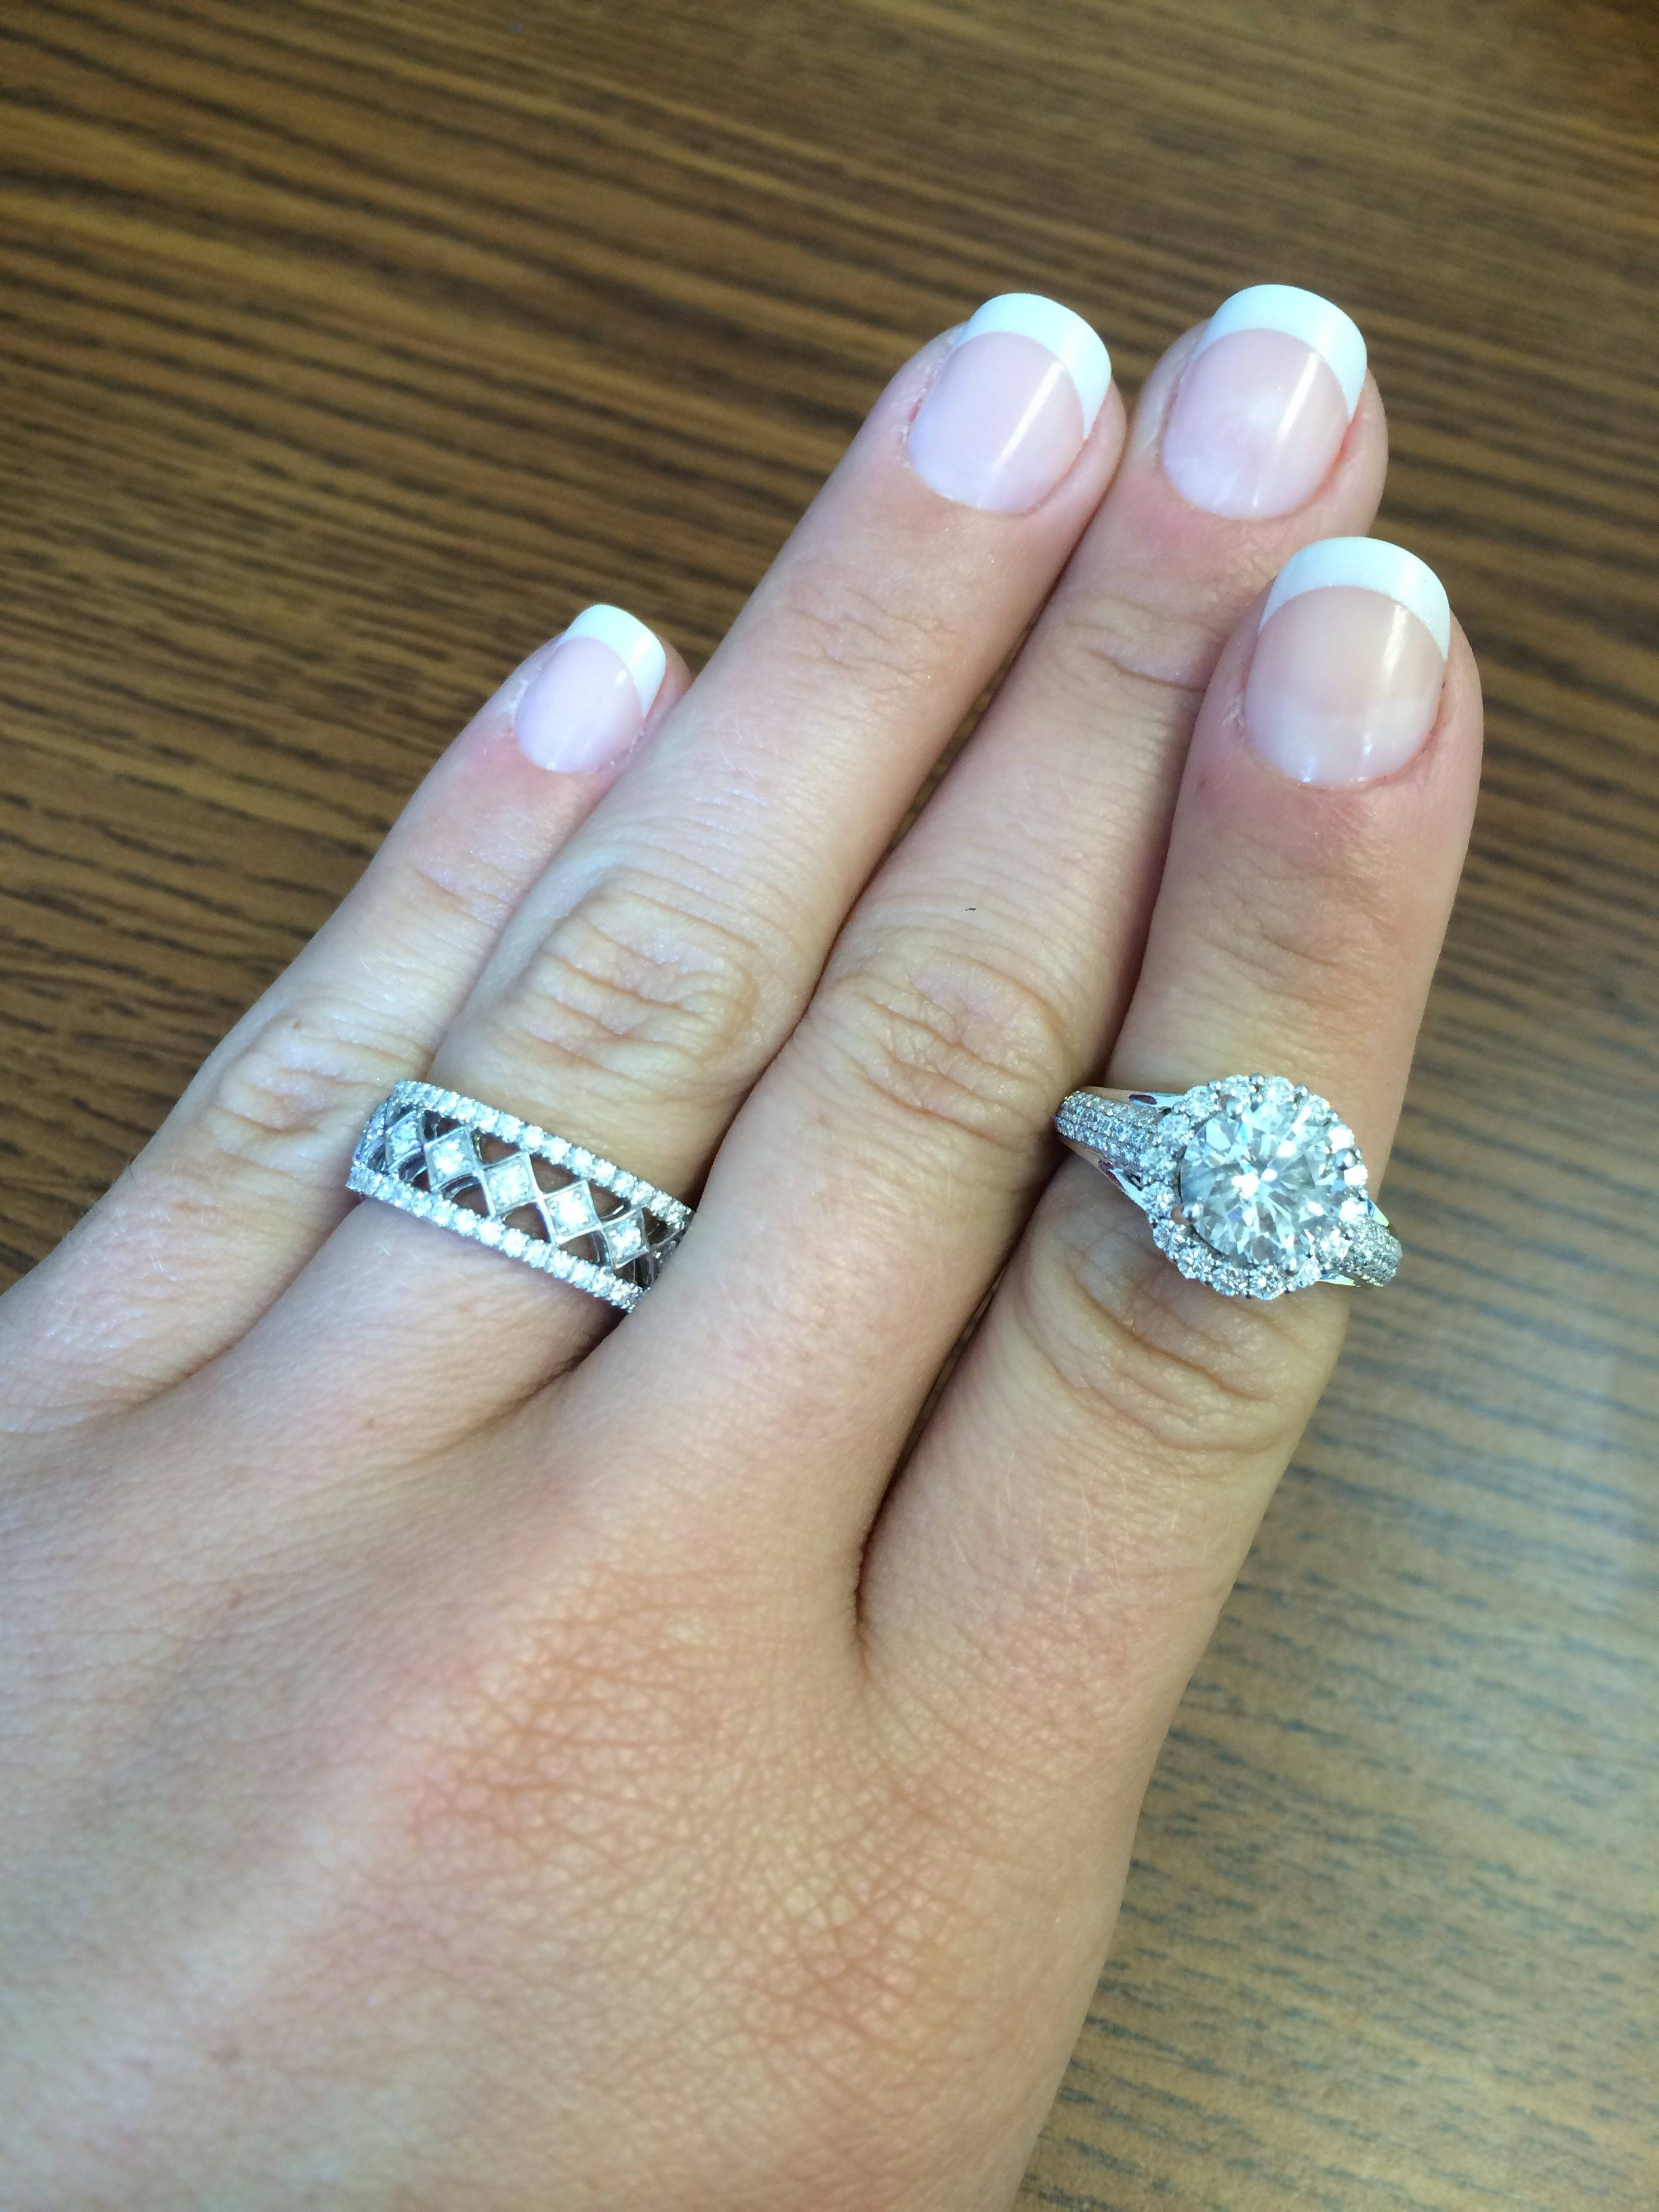 Pin on The Most Unique Diamond Engagement Rings